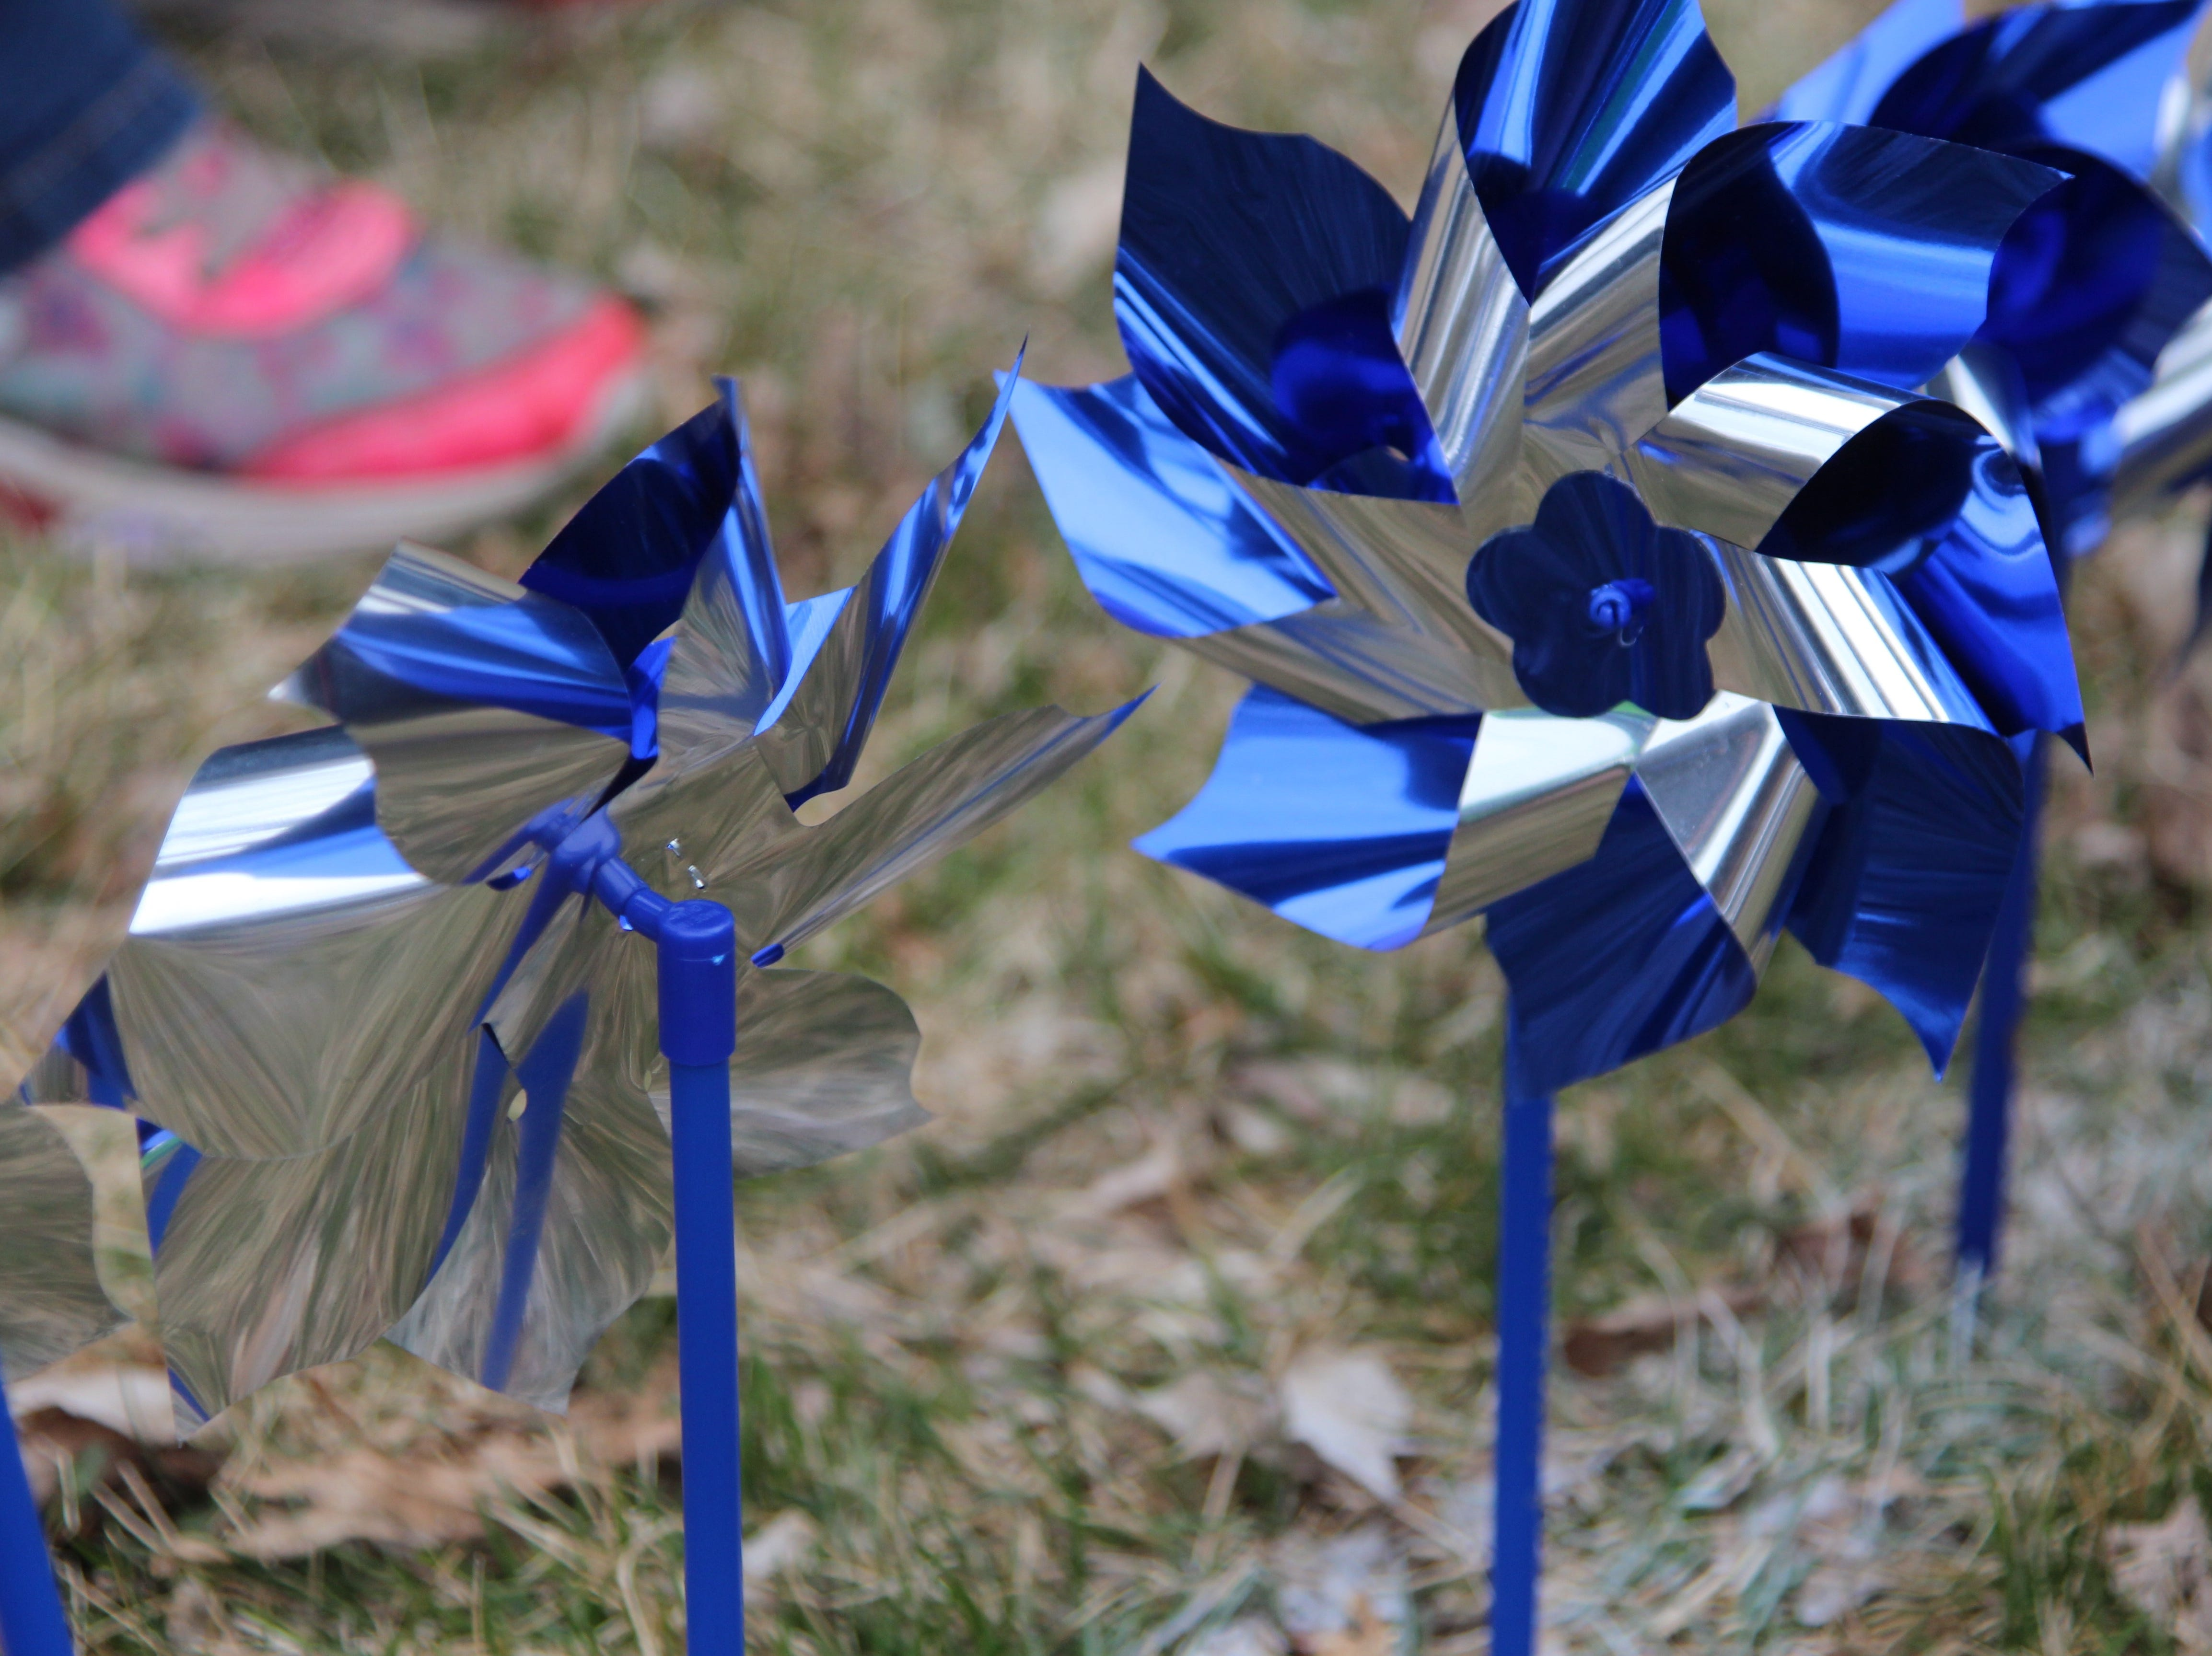 The pinwheel is meant to represent a case of neglect or abuse handled in the county last year. Volunteers and members of Marion County Children Services planted them Thursday afternoon as part of Child Abuse Awareness Month that starts in April.